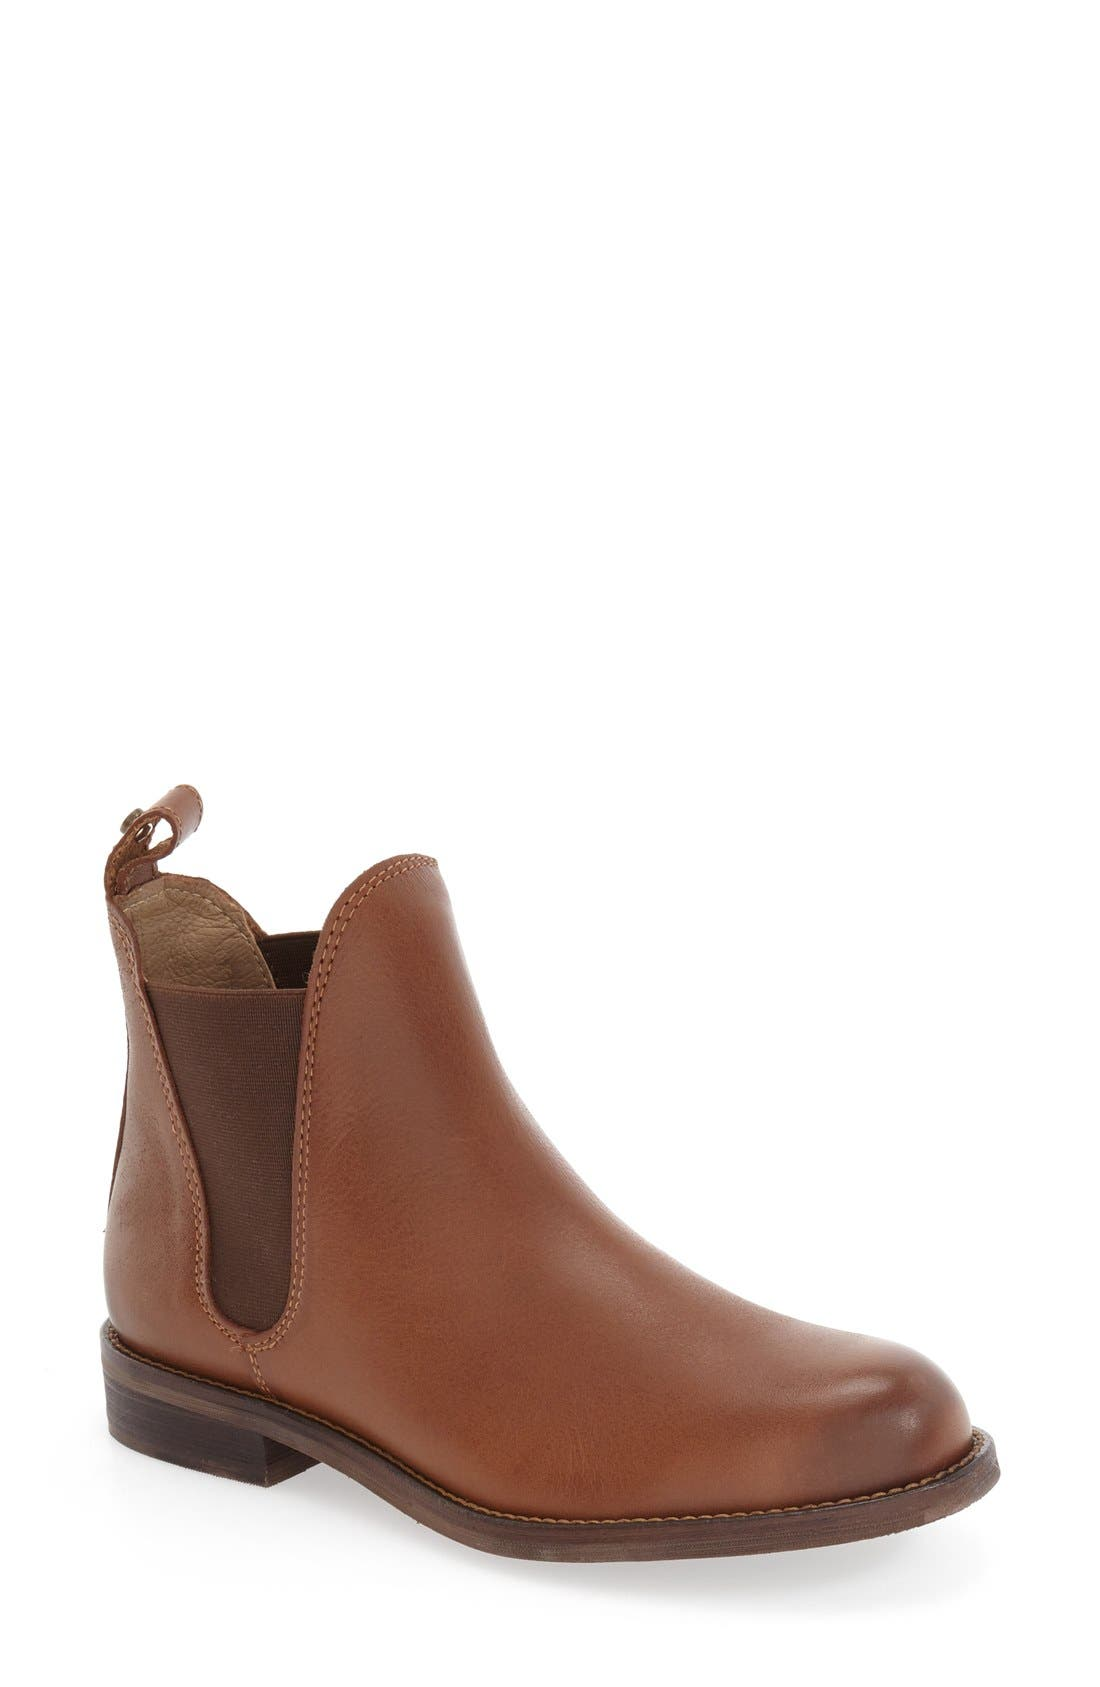 Treasure & Bond 'Royce' Chelsea Boot (Women)